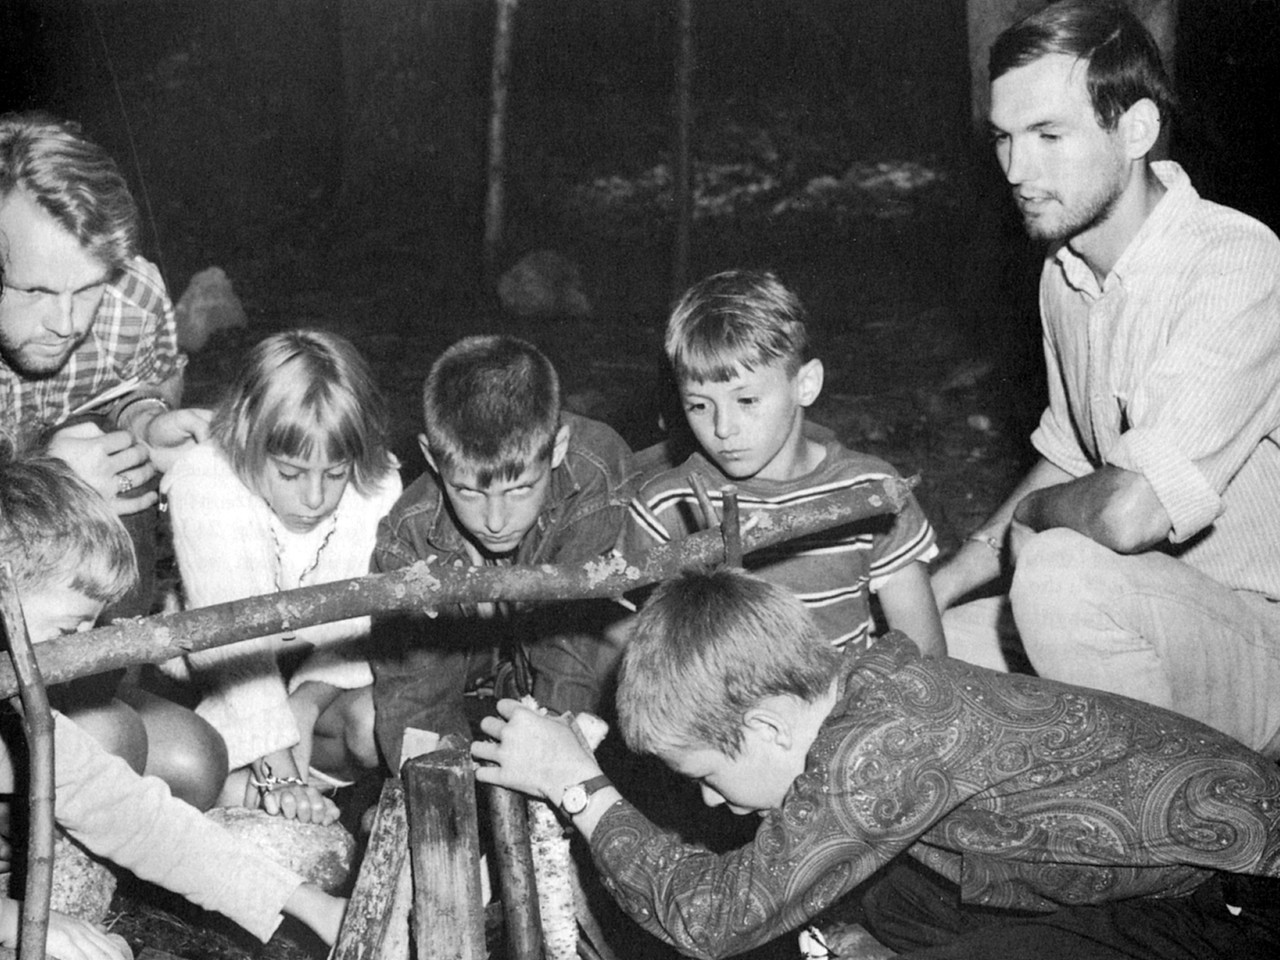 "In 1966, VISTA volunteers began organizing and staffing summer camps across the country for low-income youth. Activities included horseback riding, swimming, scavenger hunts, candle making, sleepouts, cookouts, and nature study. ""We gave the campers a chance to be kids for five days, to discover the country, to be away from the pressures of cars and police and going to the store for mother,"" said Chuck Koloms, a VISTA volunteer who, in 1968, sold candy in Pittsburgh's City Hall to raise funds to help turn a local estate into Maple Lodge Camp. (© 1968 Corporation for National and Community Service- Office of Public Affairs)"